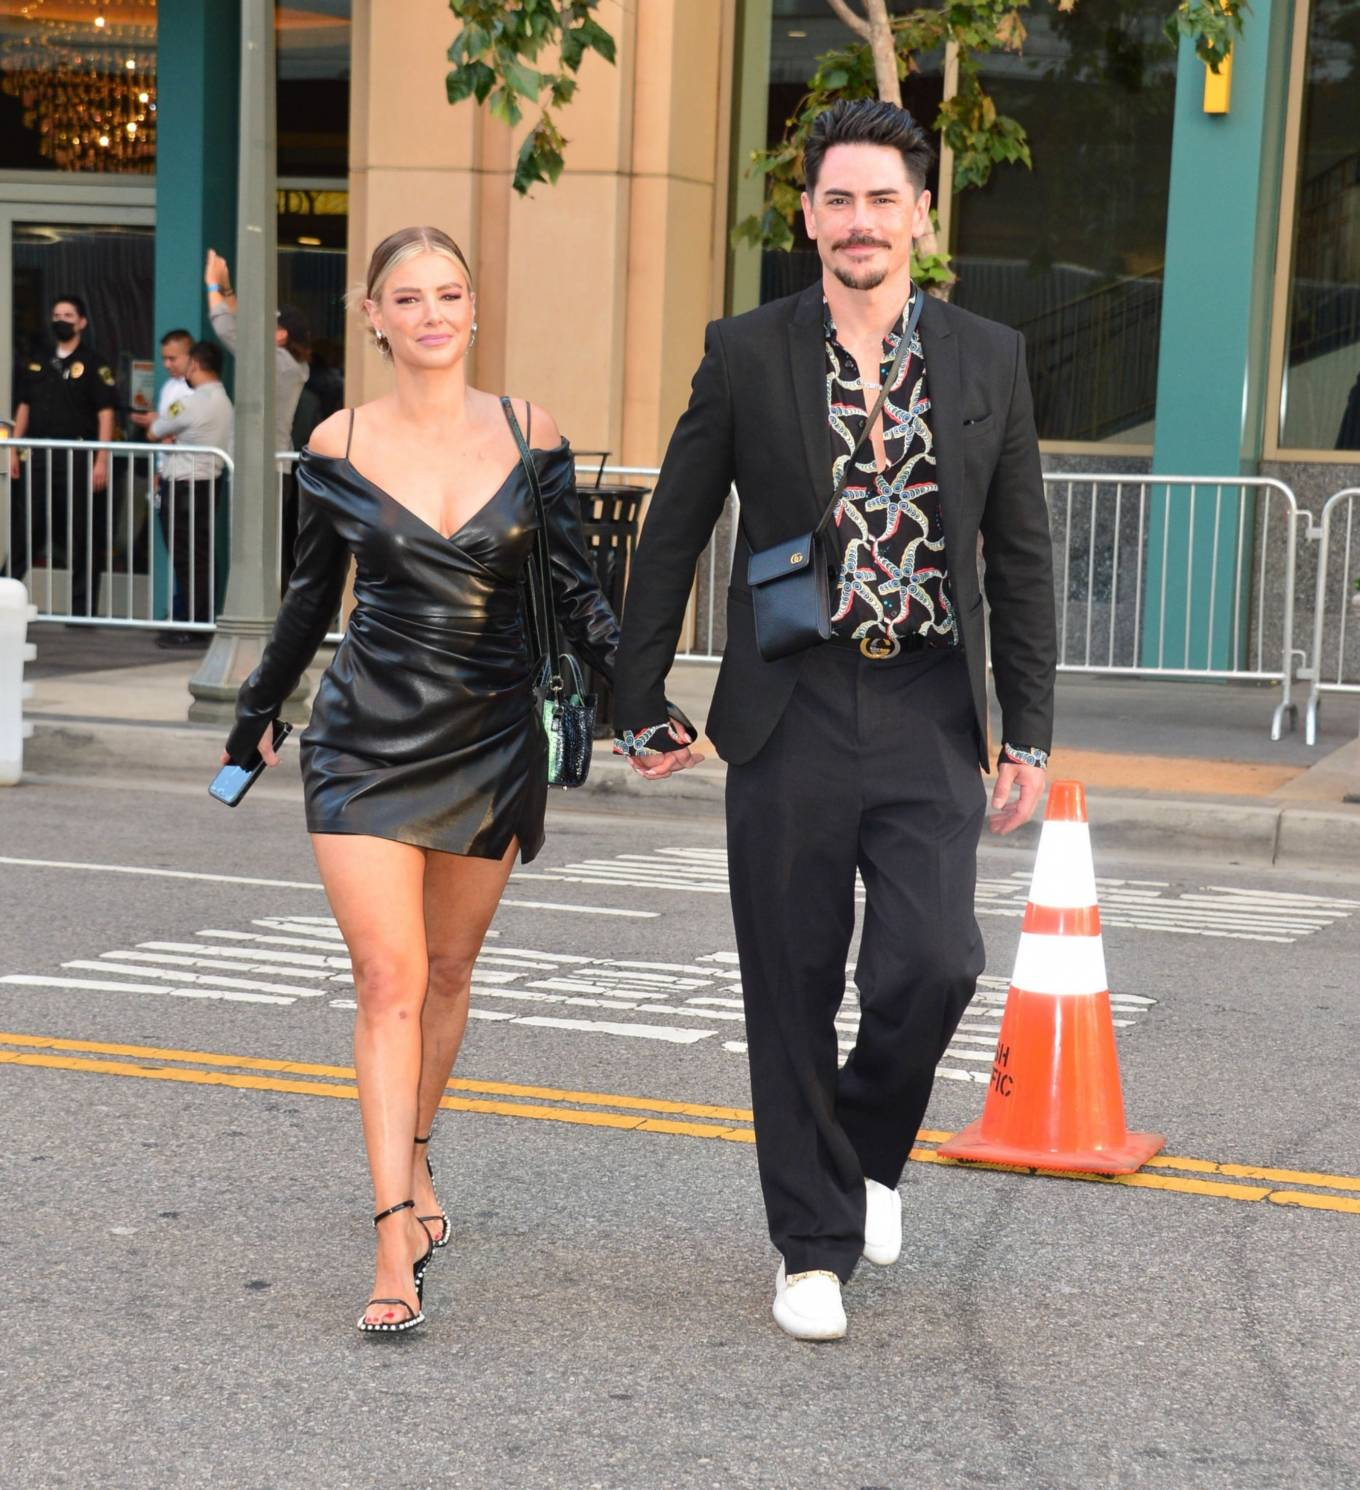 Ariana Madix 2021 : Ariana Madix – With Tom Sandoval seen arriving at the Midnight In The Switchgrass in Los Angeles-08